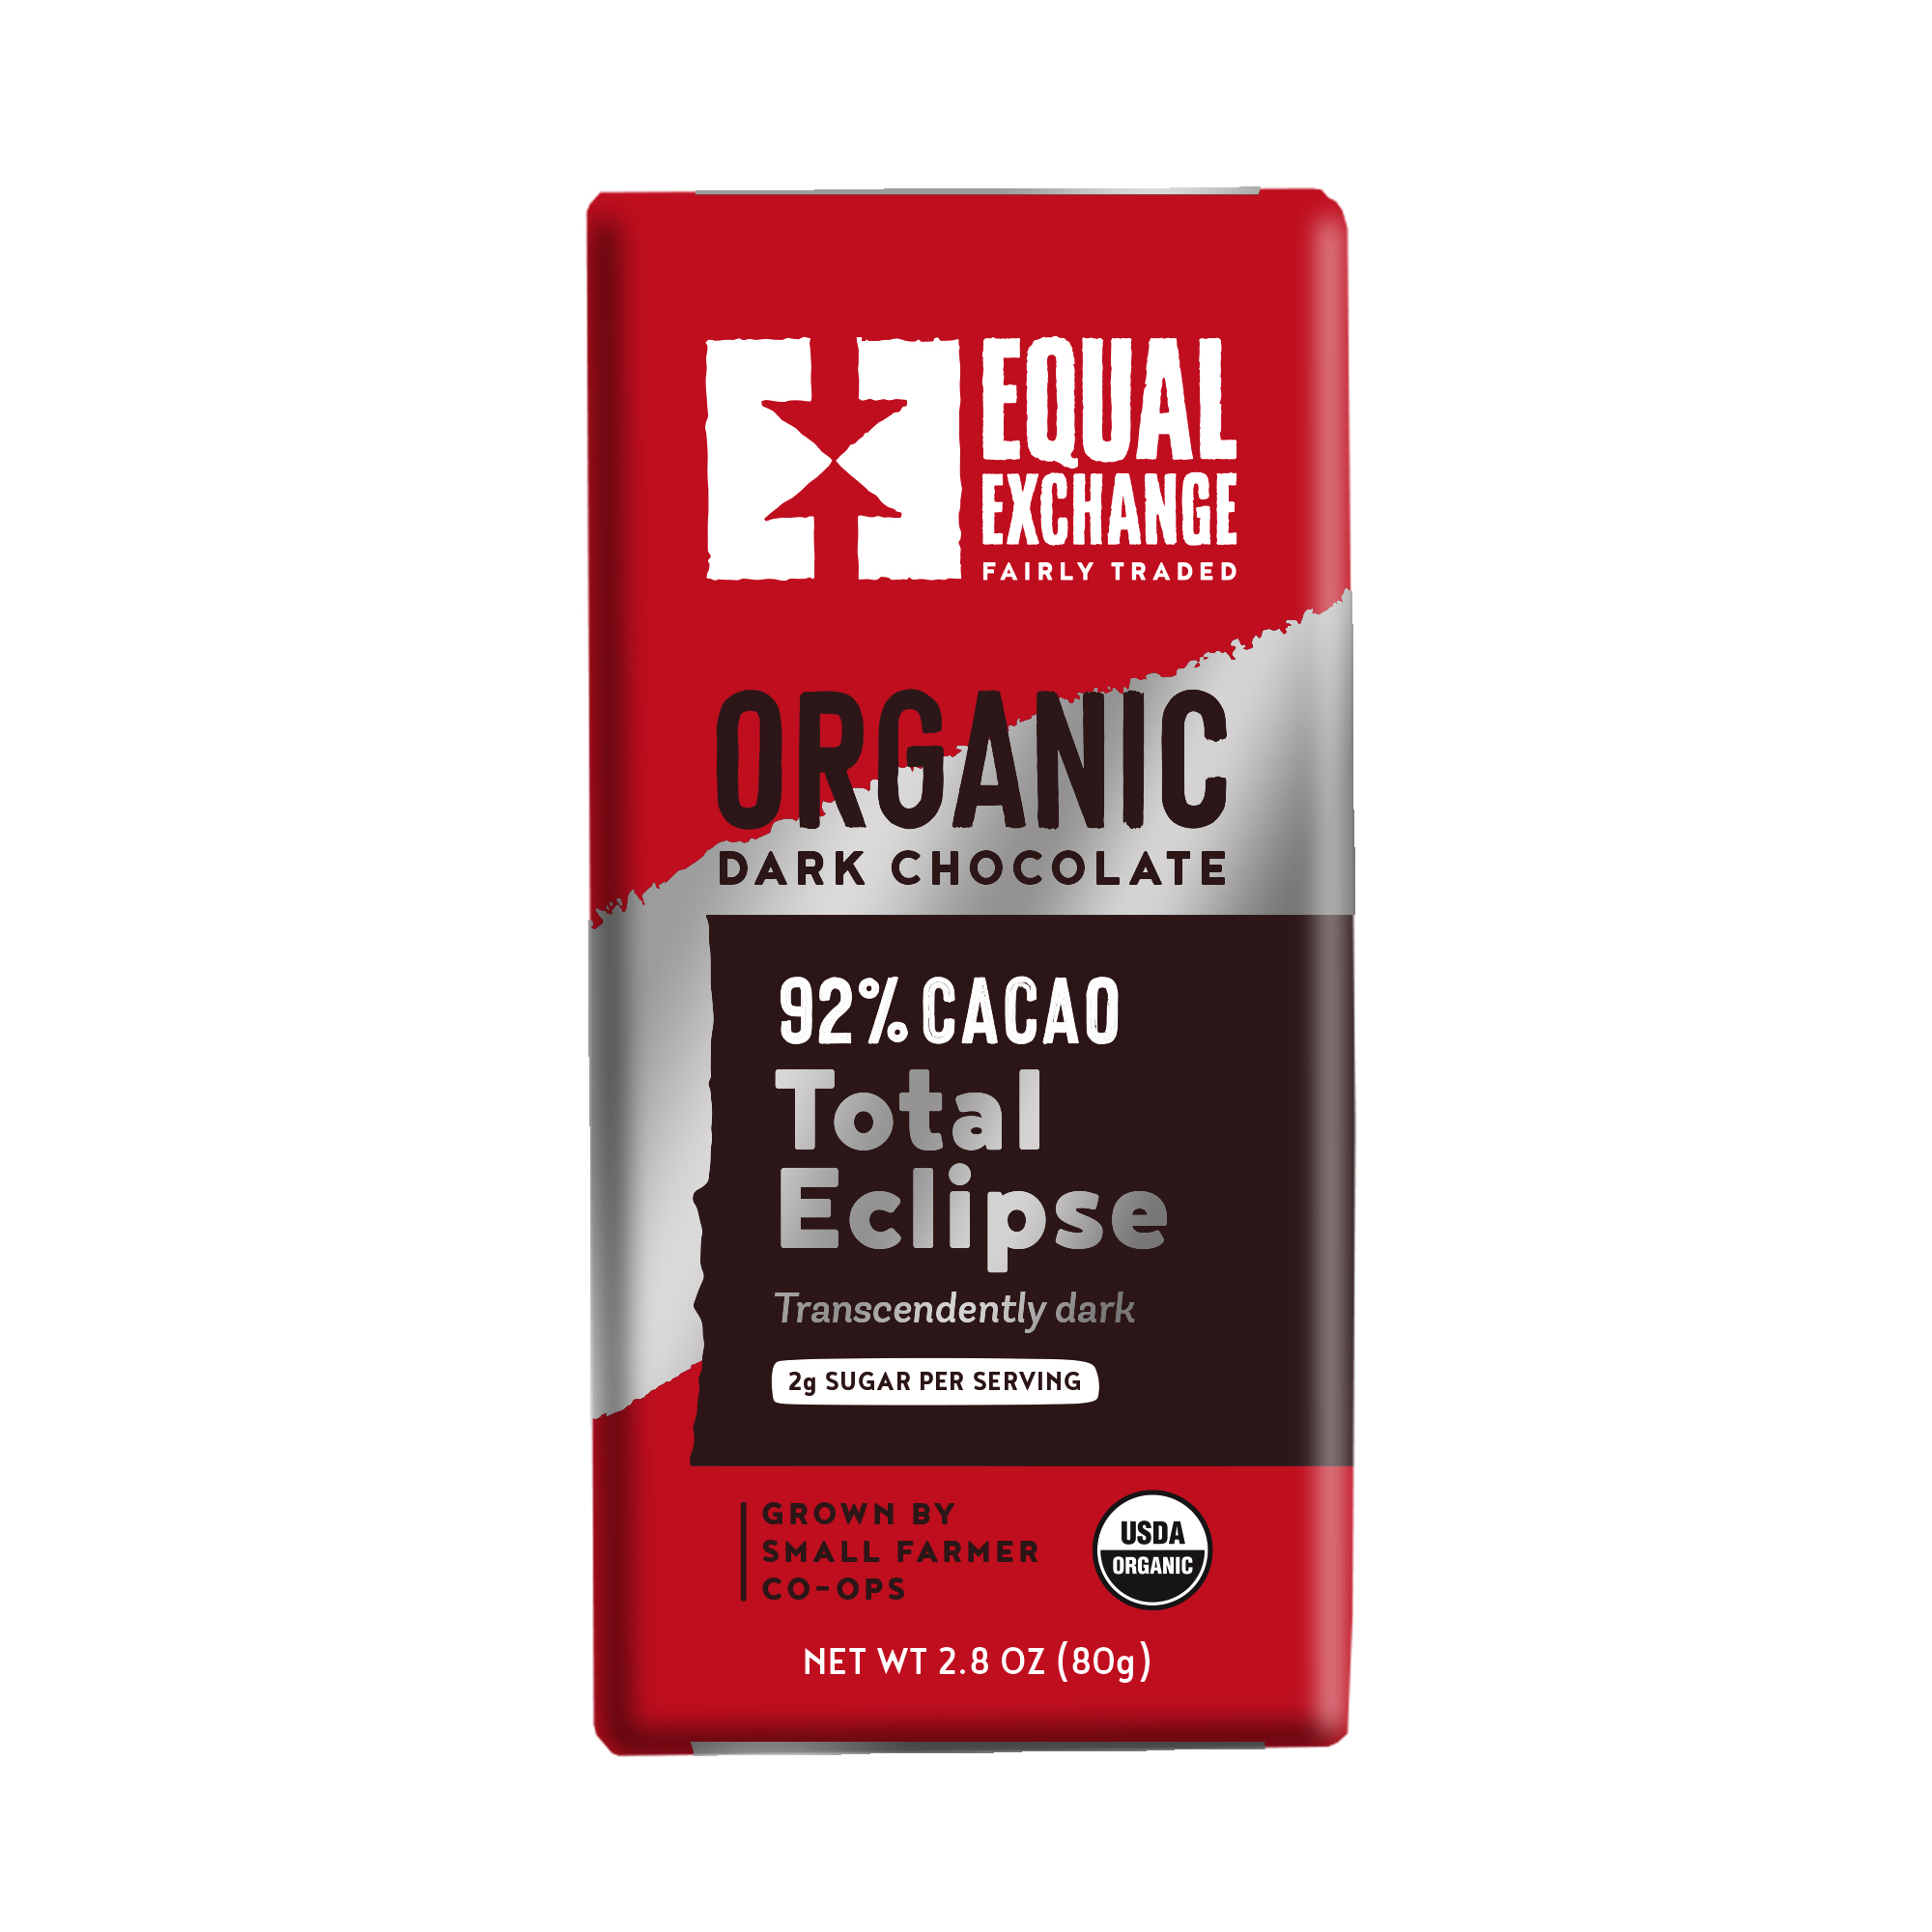 Equal Exchange Organic Total Eclipse Dark Chocolate Bar, 92% Cacao